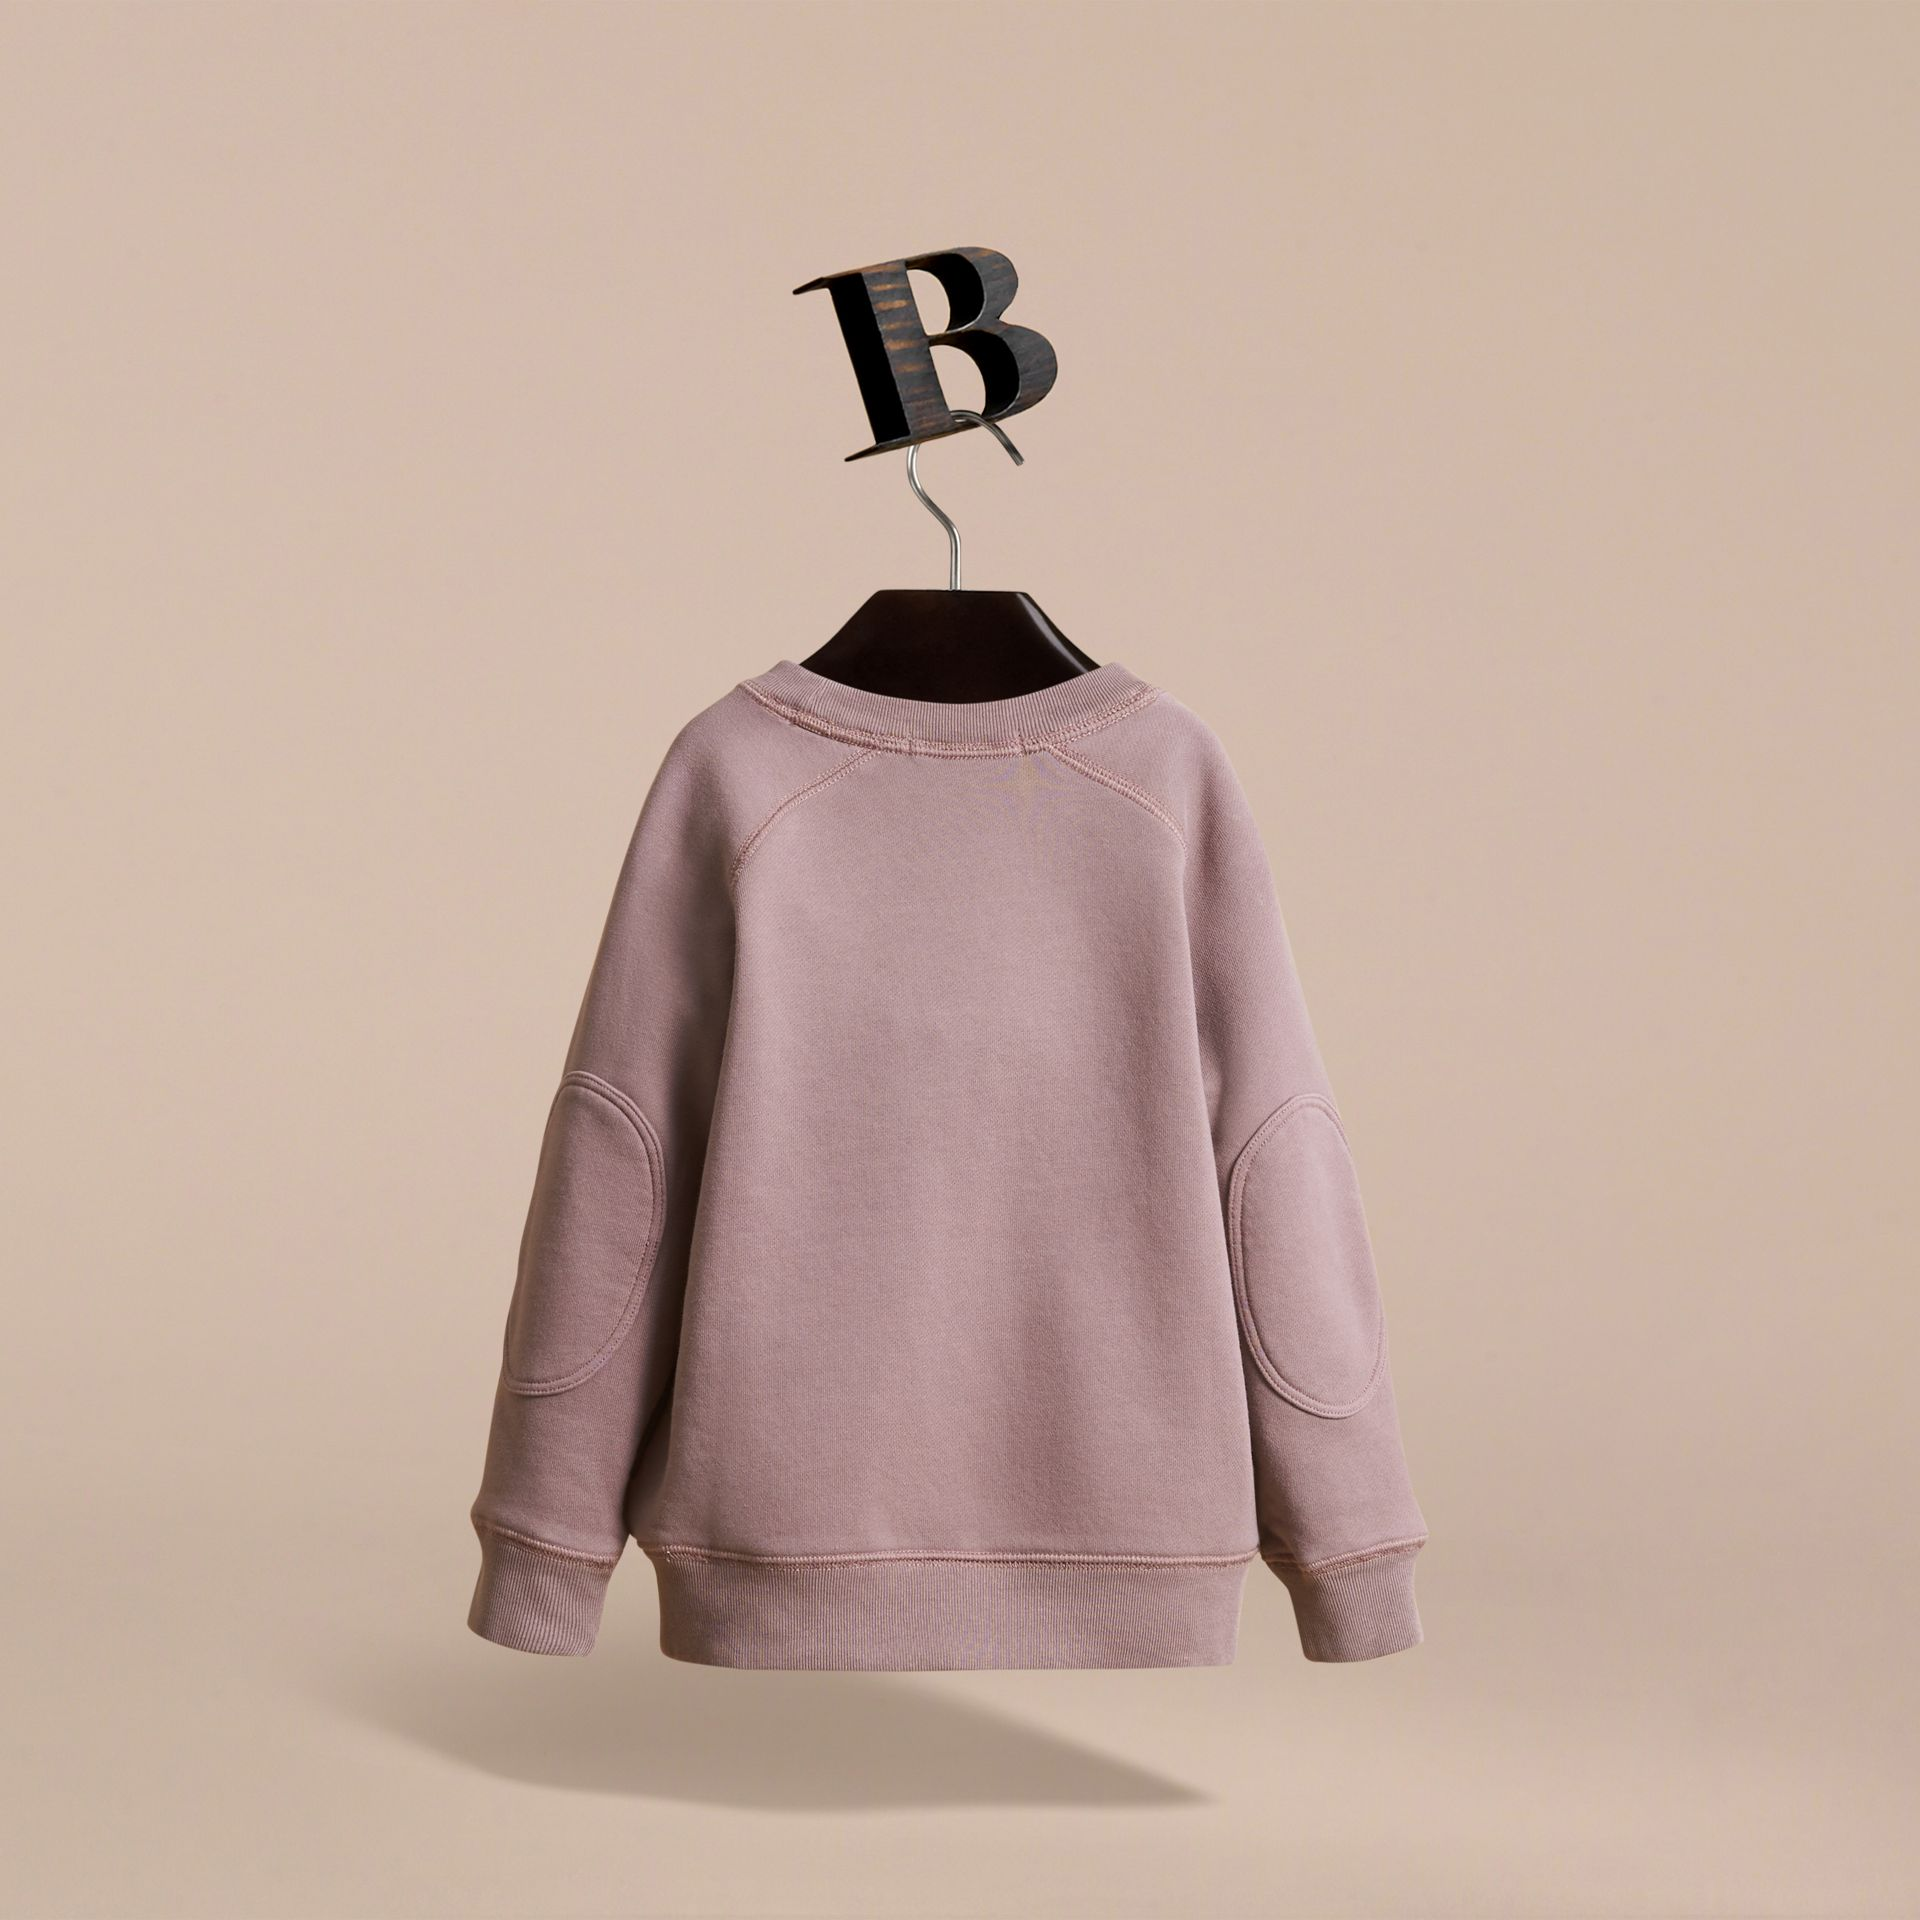 Pigment-dyed Cotton Jersey Sweatshirt in Dusty Mauve | Burberry - gallery image 4